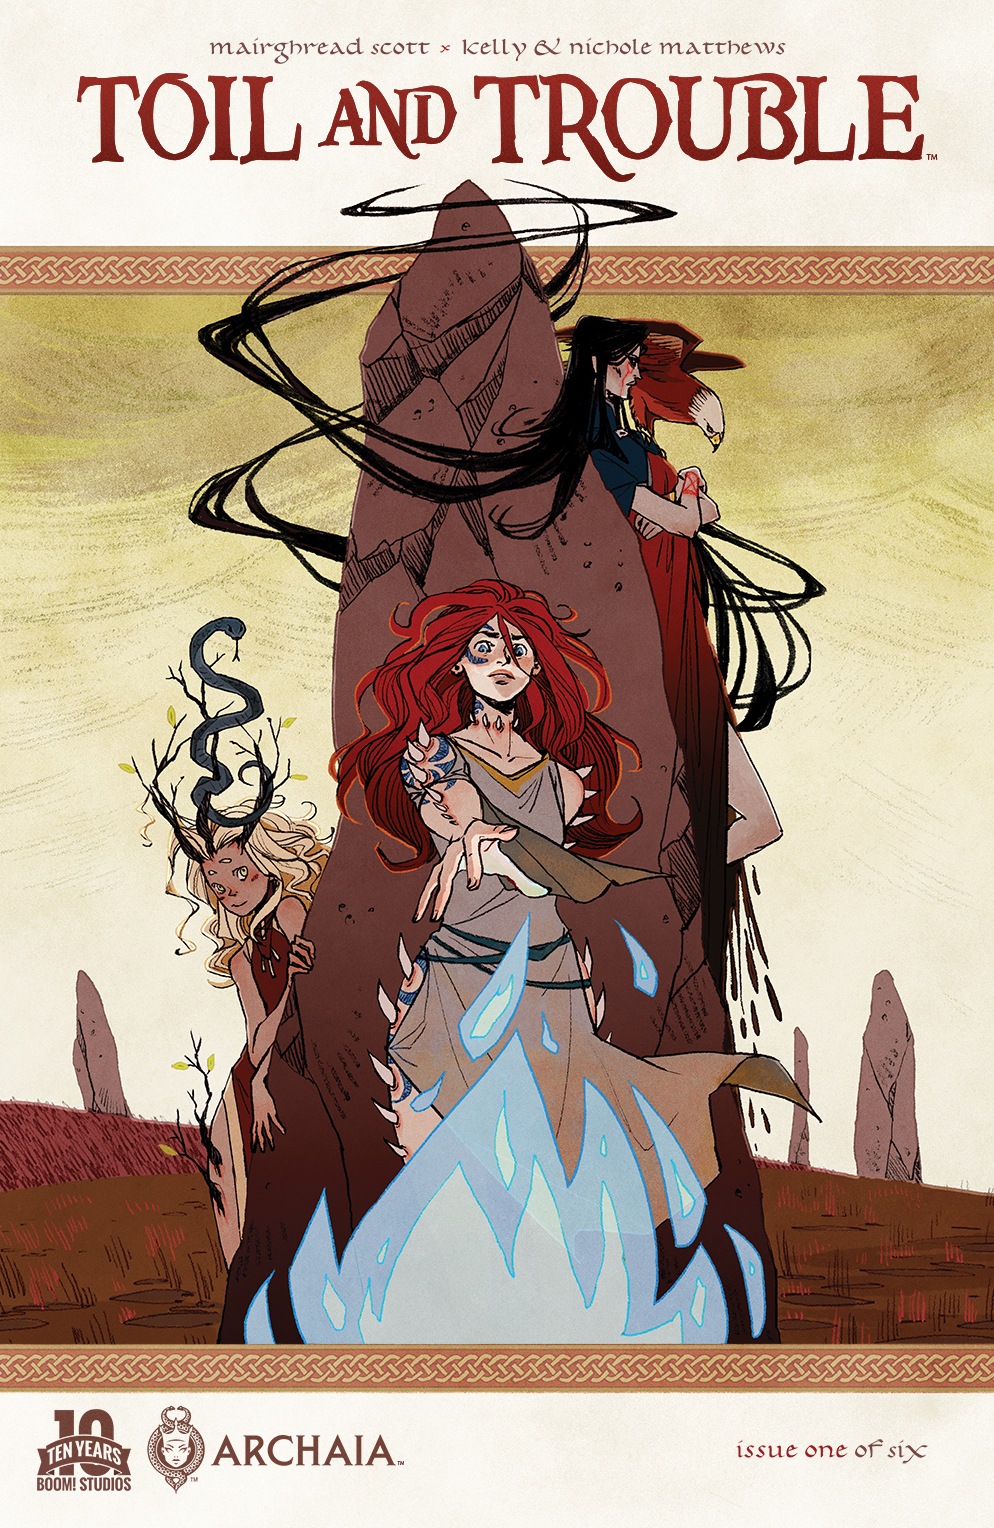 Toil and Trouble #1 Review: We Three Queens and a Macbeth